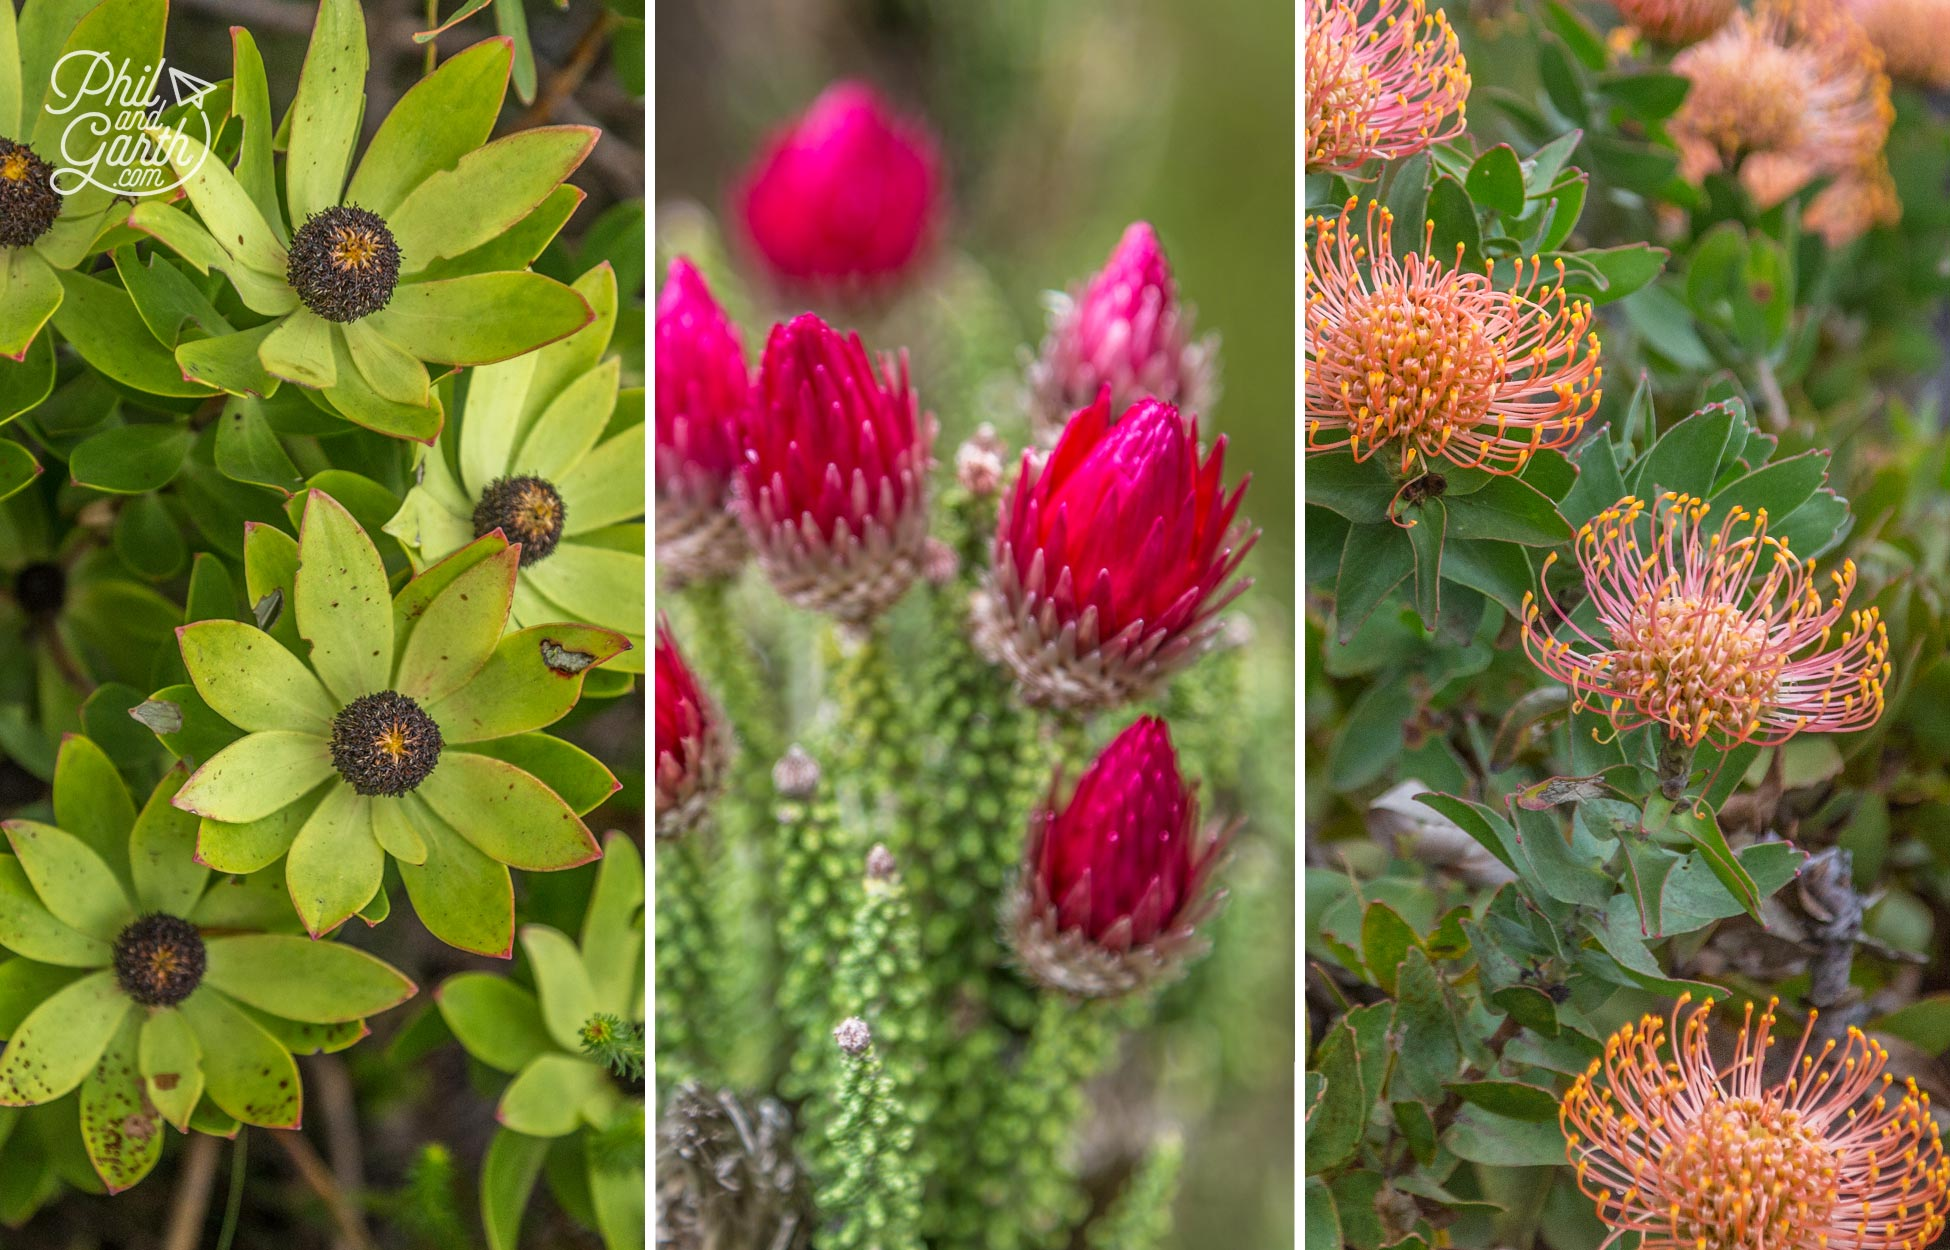 Different varieties of fynbos flowers